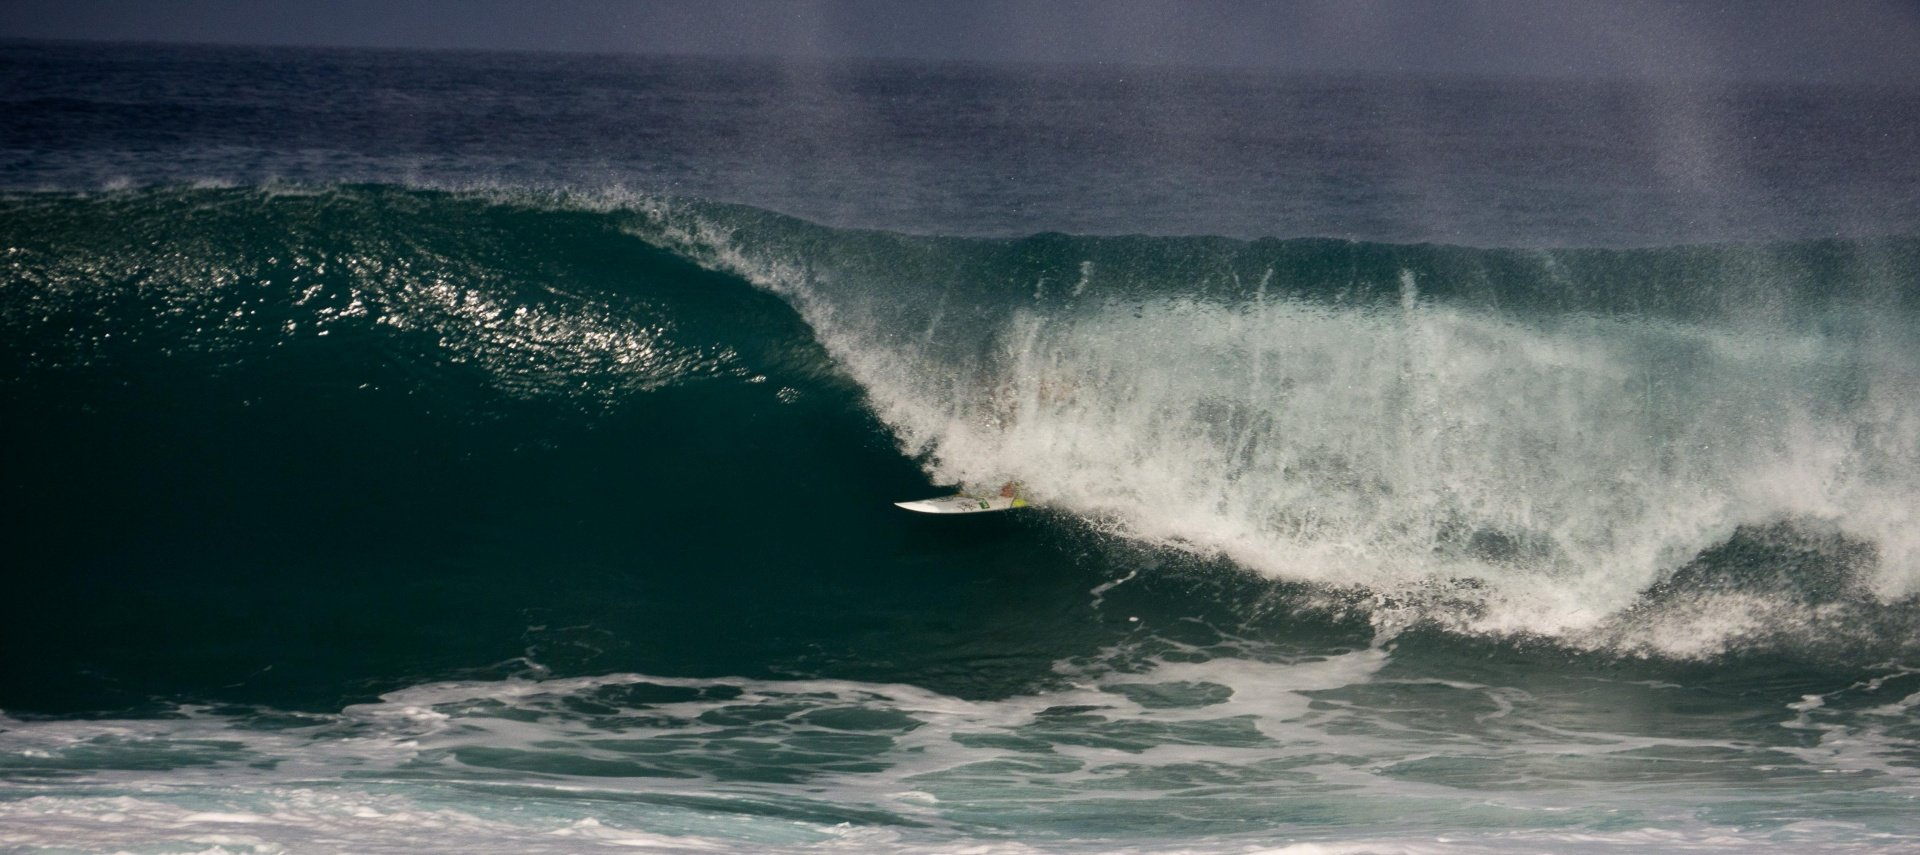 PembyJon's photo of Honolua